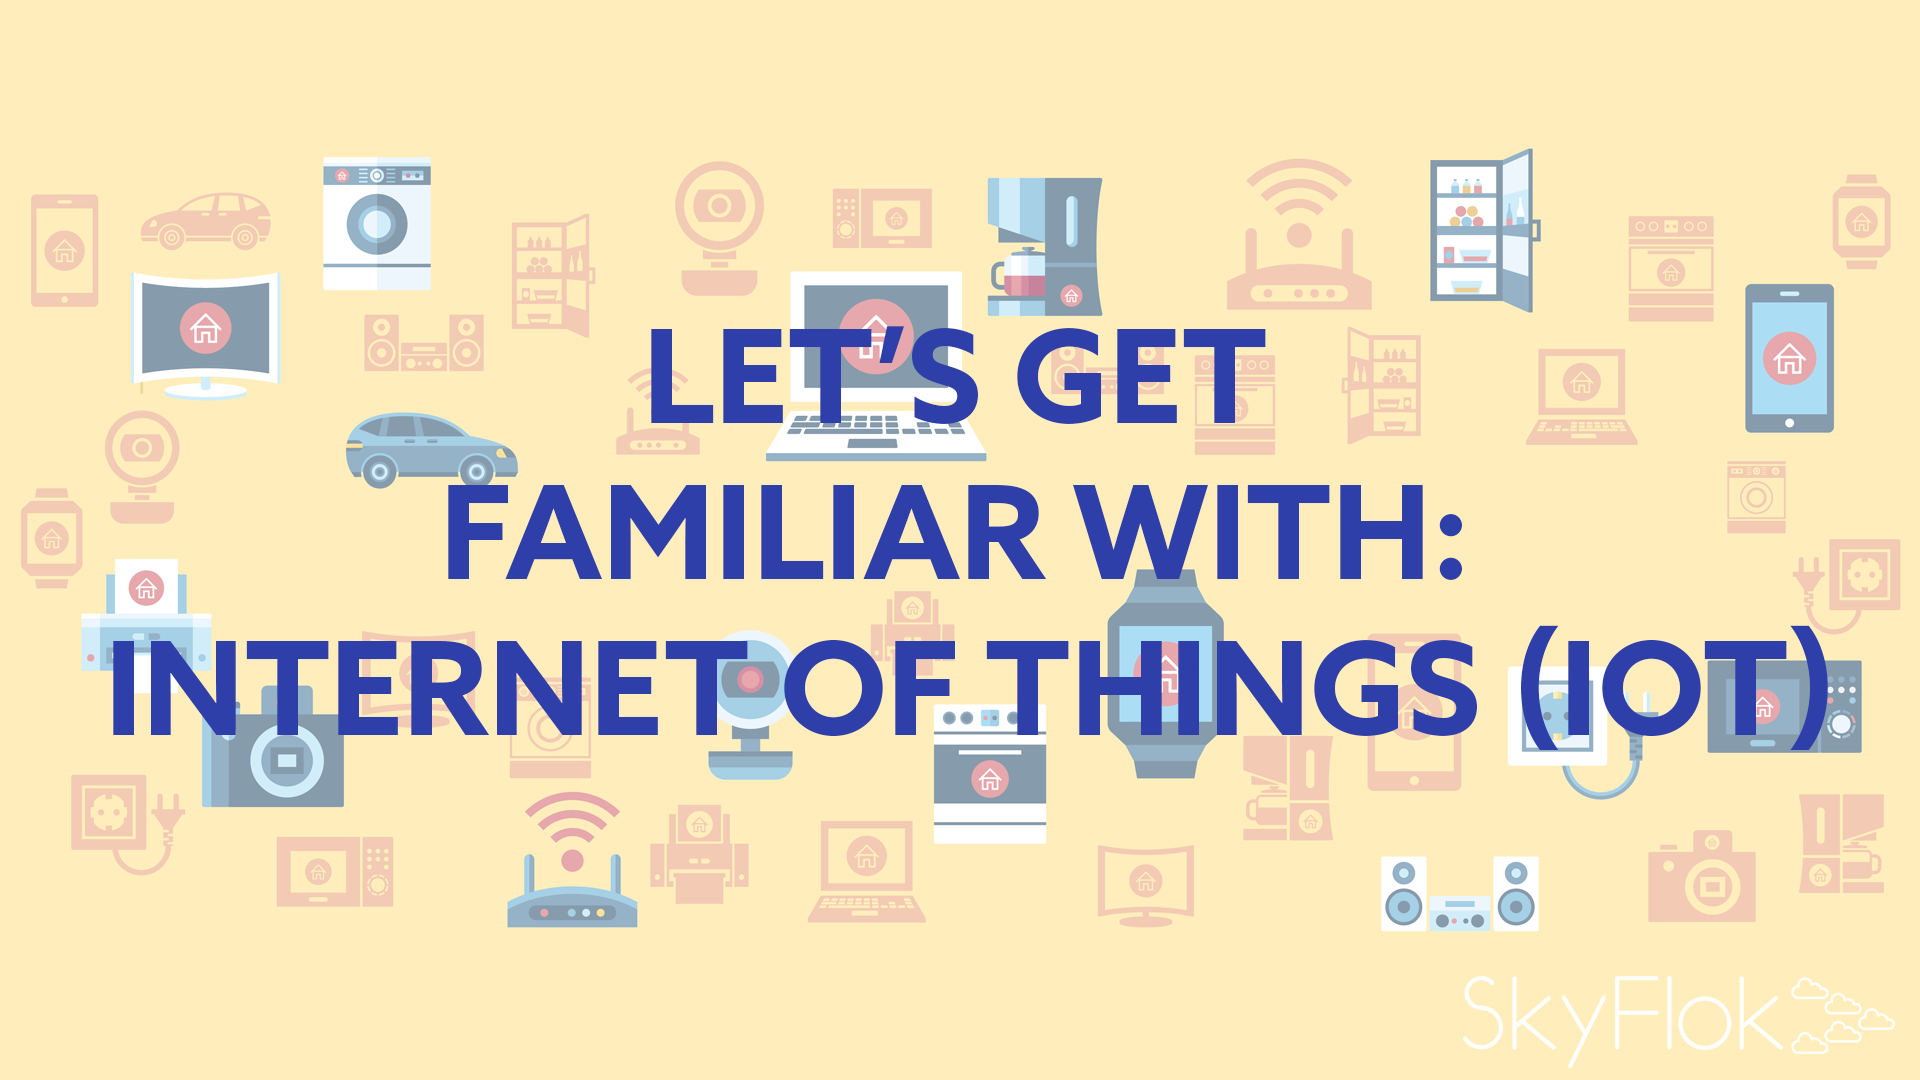 Let's get Familiar with IoT